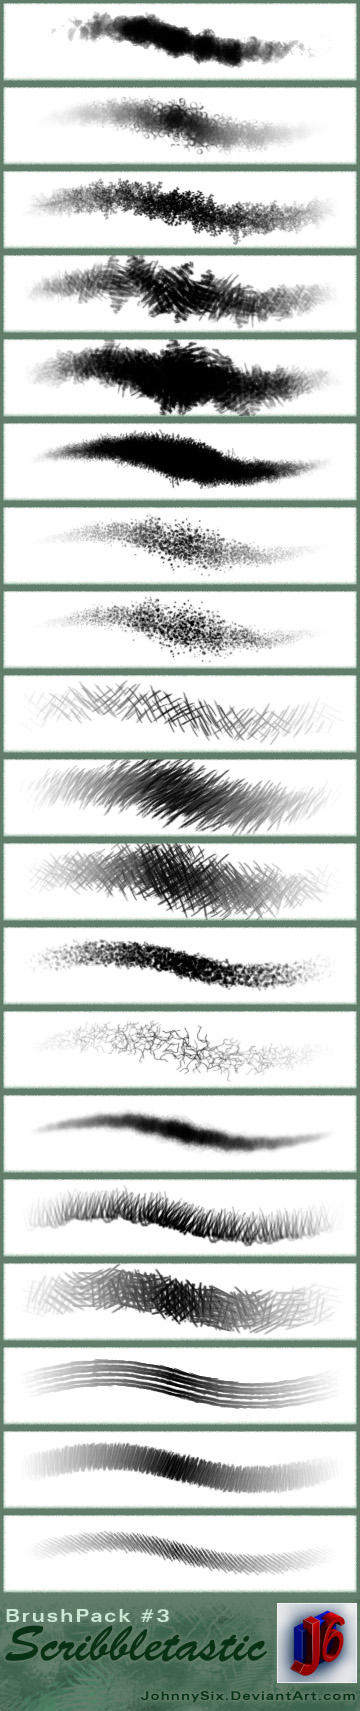 Scribbletastic brush pack by JohnnySix